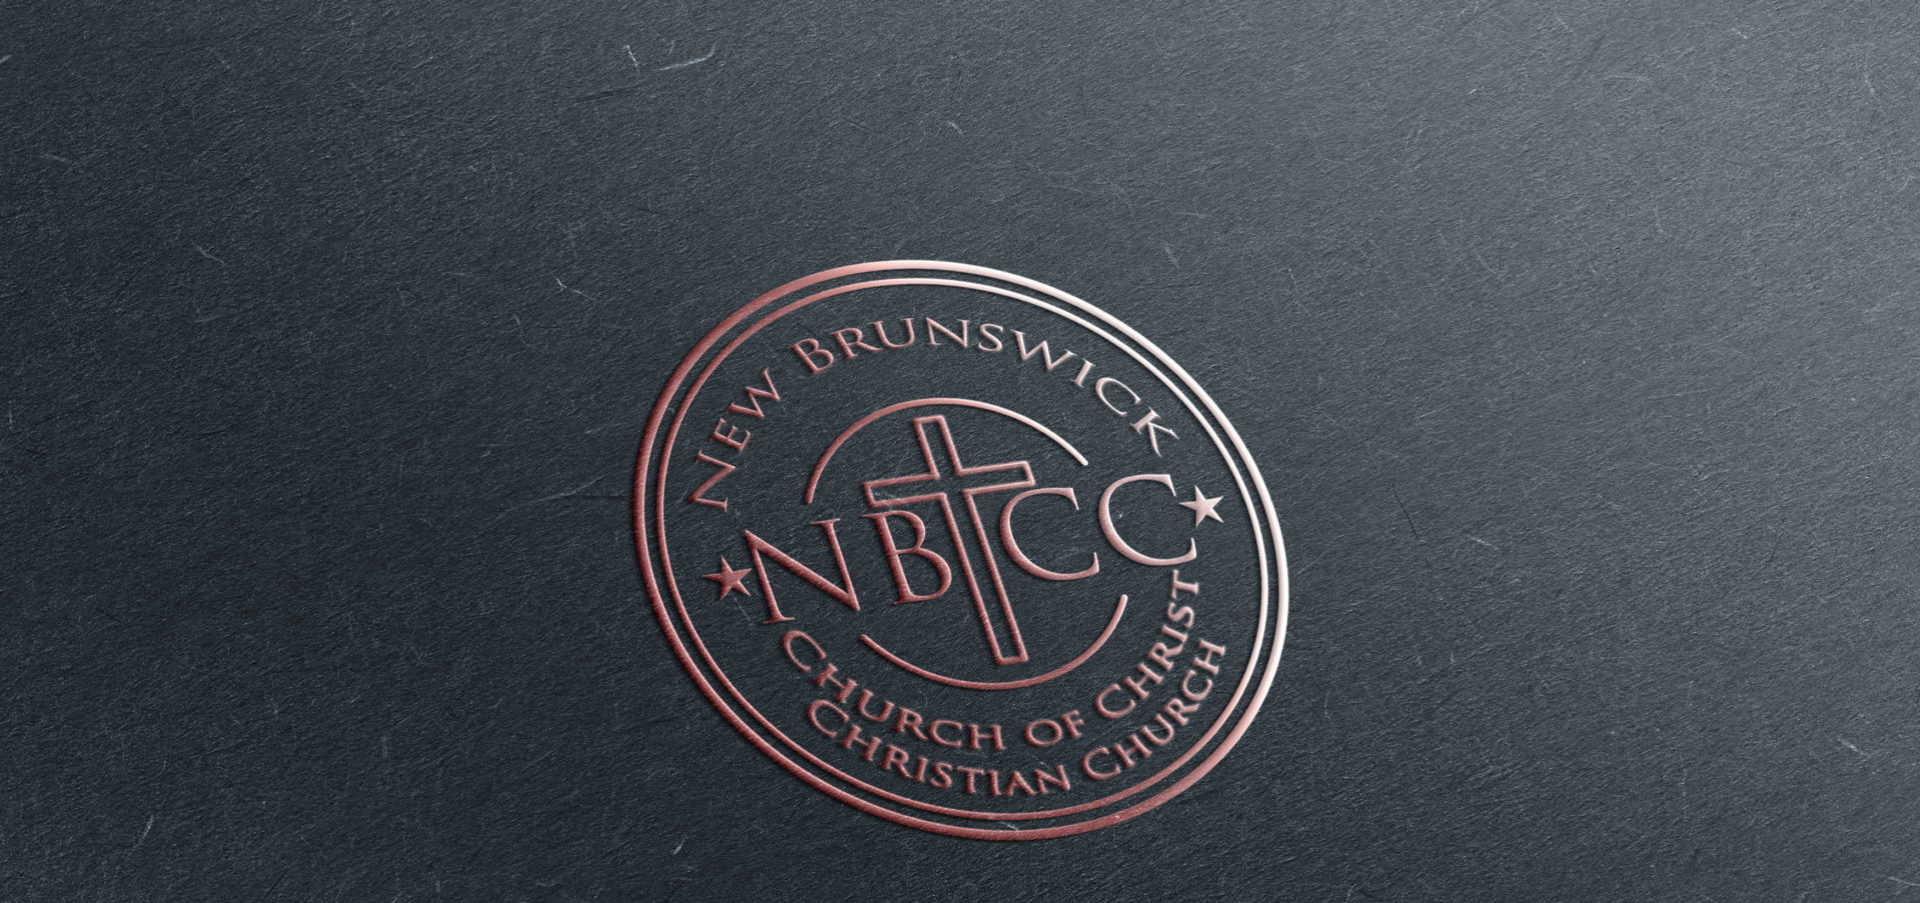 New Brunswick Church of Christ